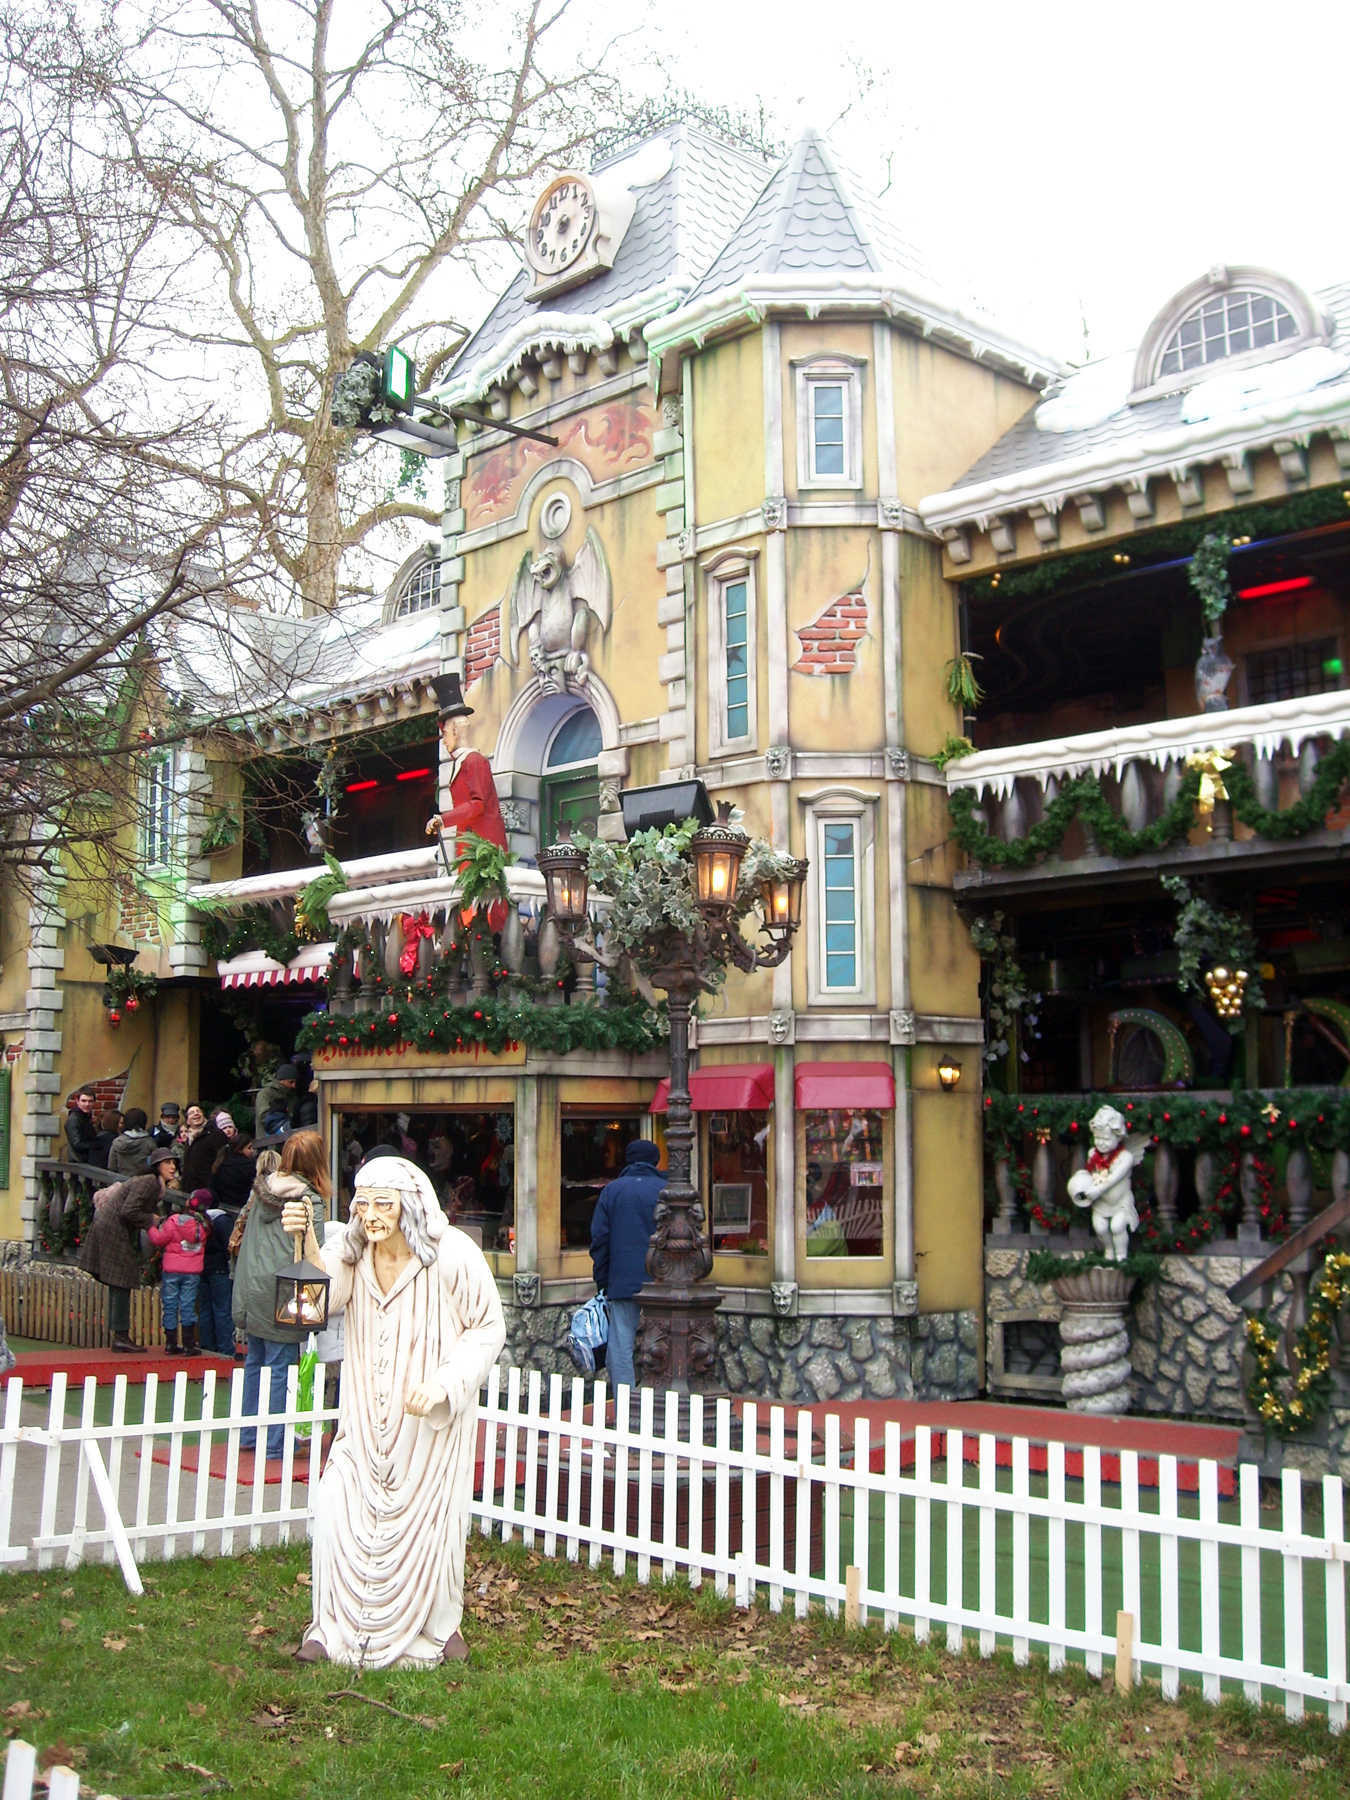 Winter Wonderland Fair, Hyde Park, London, England